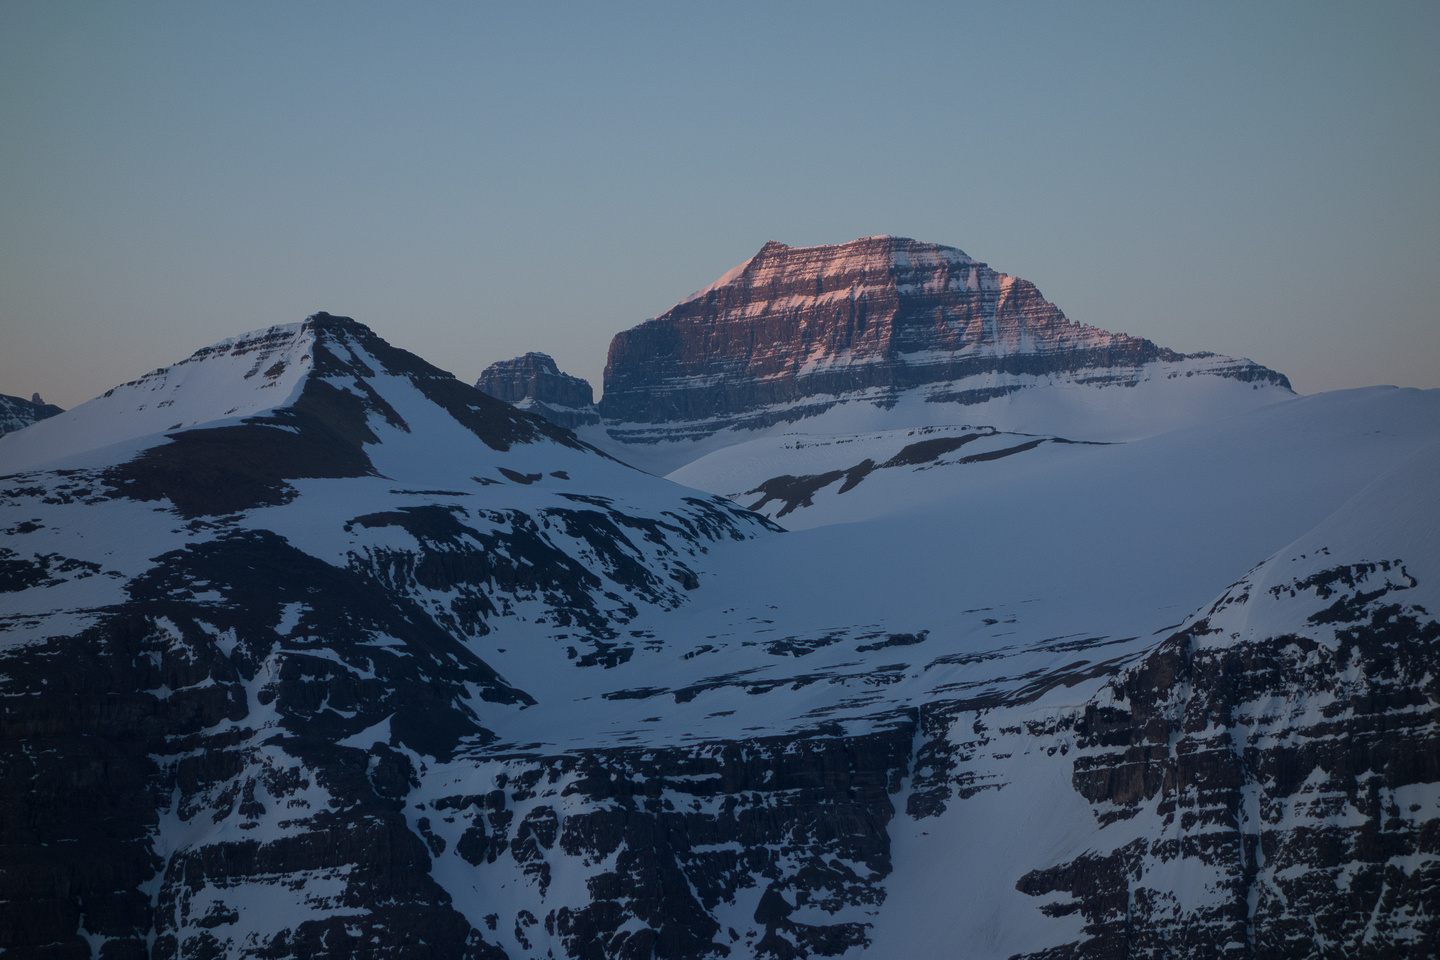 Sunrise on Mount Saskatchewan - Big Bend Peak in the foreground.